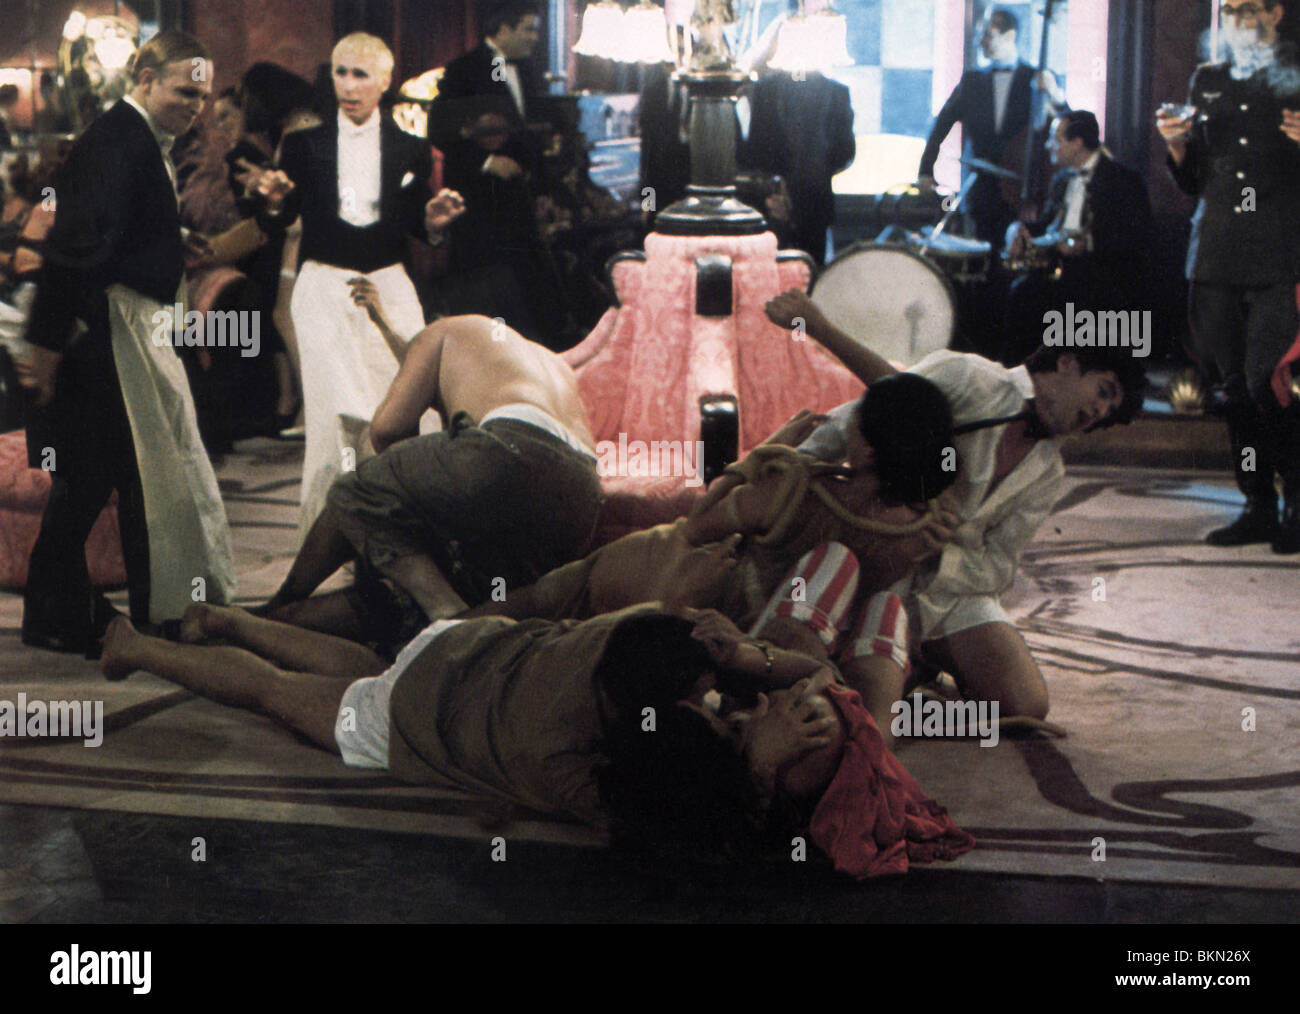 Salon Kitty Salon Kitty 1978 Stock Photo Royalty Free Image